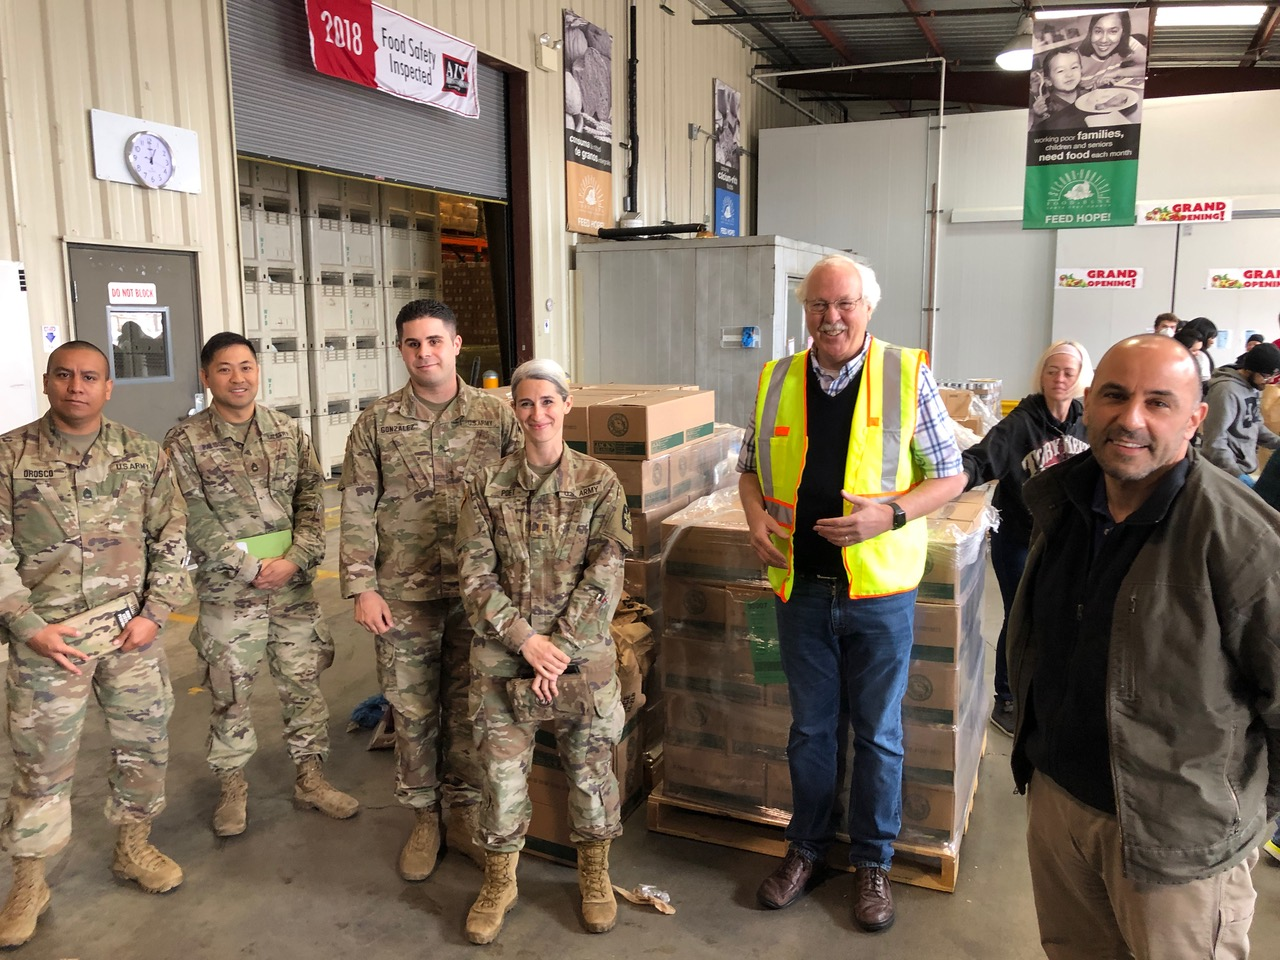 Willy Elliot-McCrea, CEO of the Second Harvest Food Bank in Santa Cruz County, with the National Guard